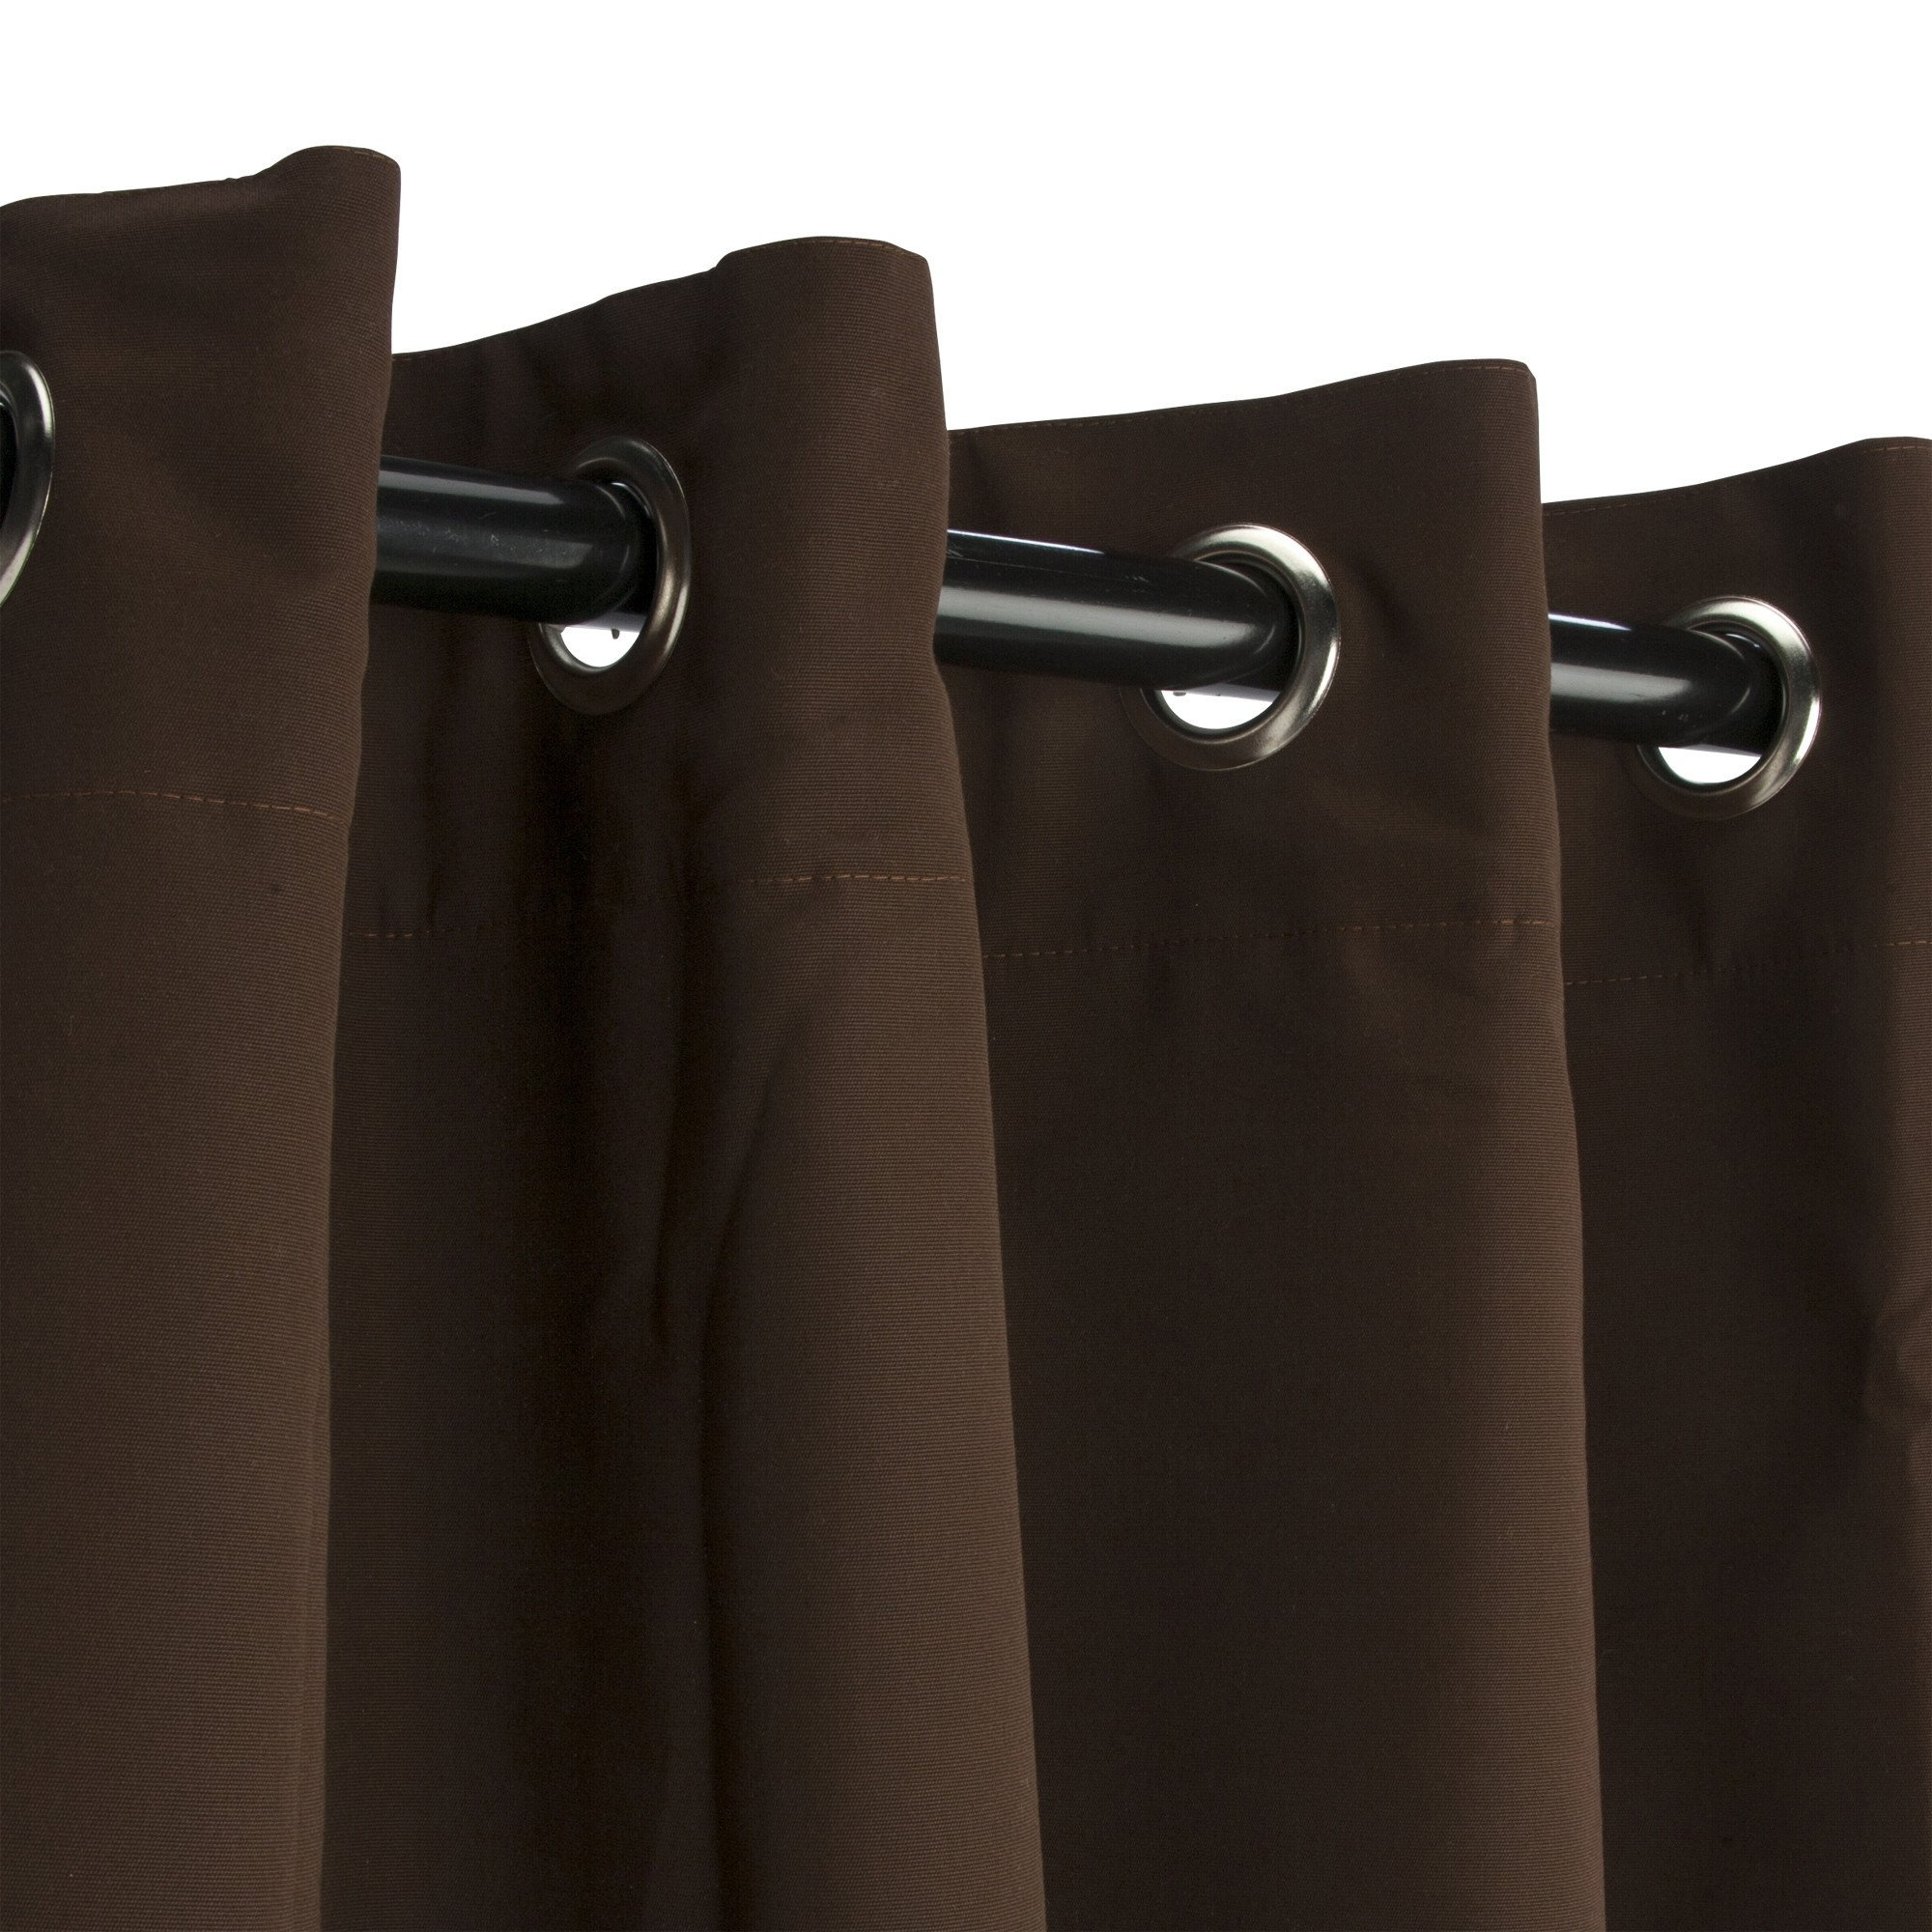 Sunbrella Curtains | Sunbrella Cushion | Outdoor Drapes Sunbrella